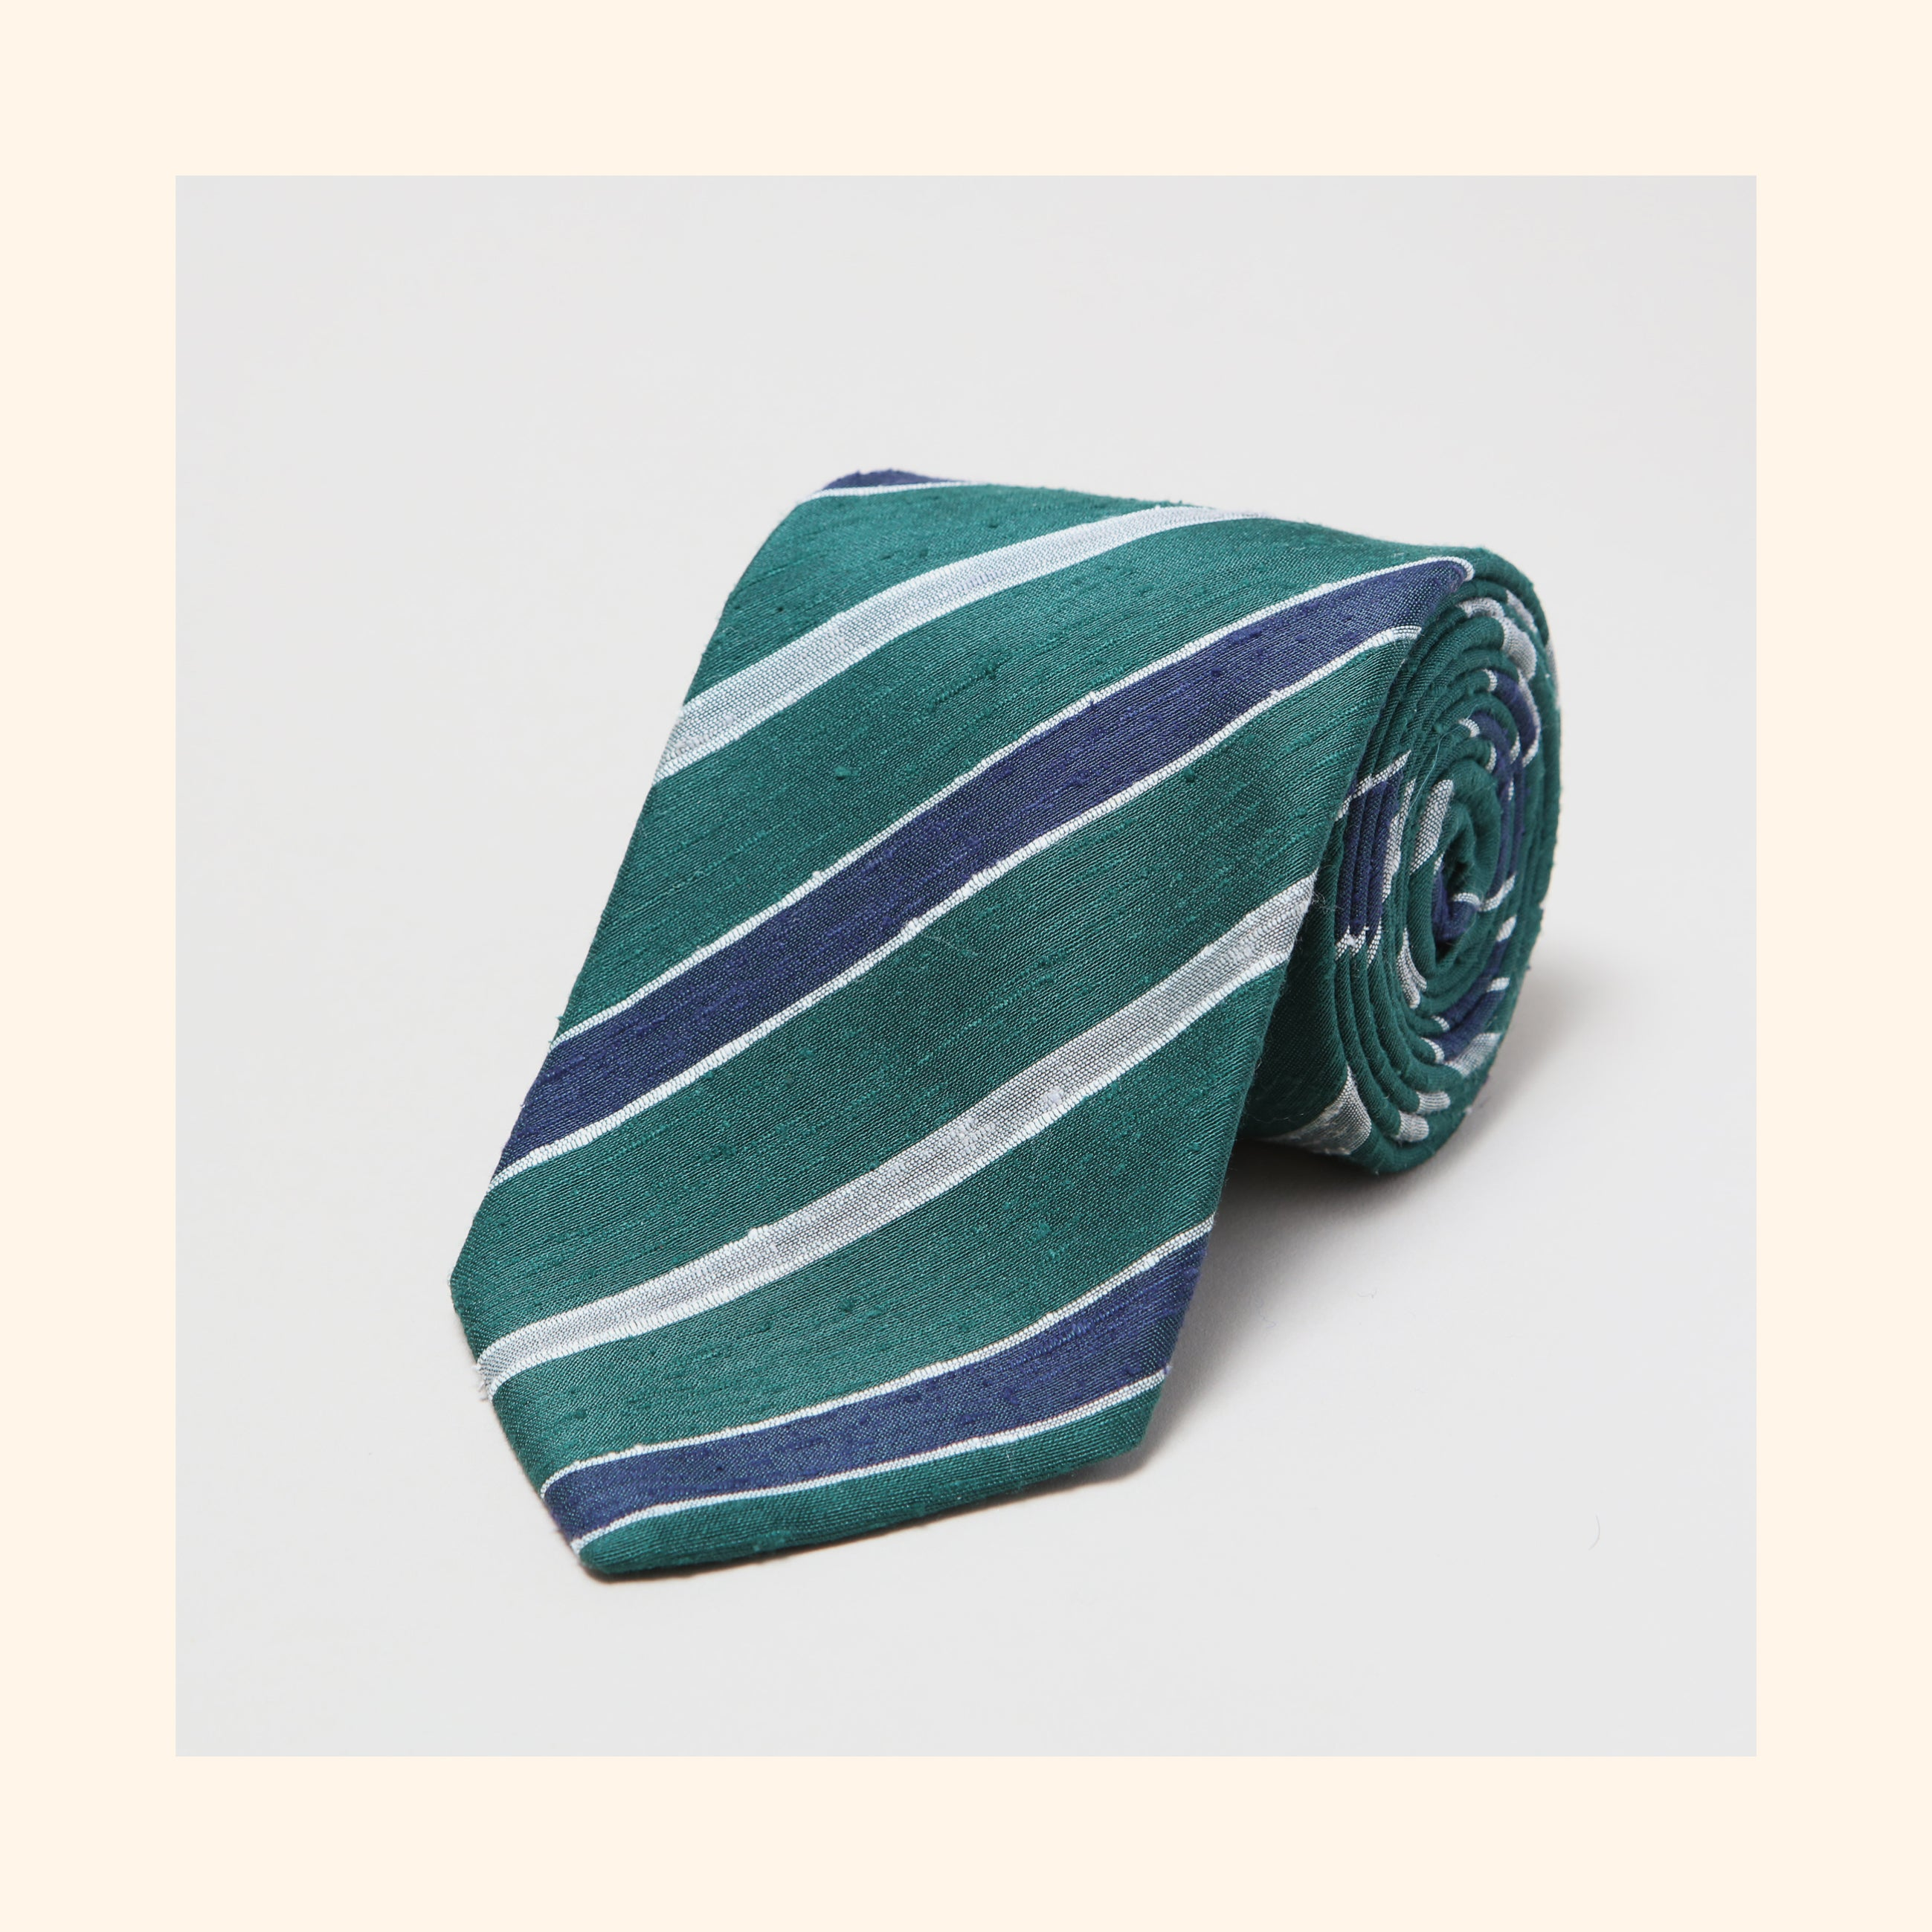 № 086 - Green/Navy/Ivory Double Stripe Shantung Silk Tie